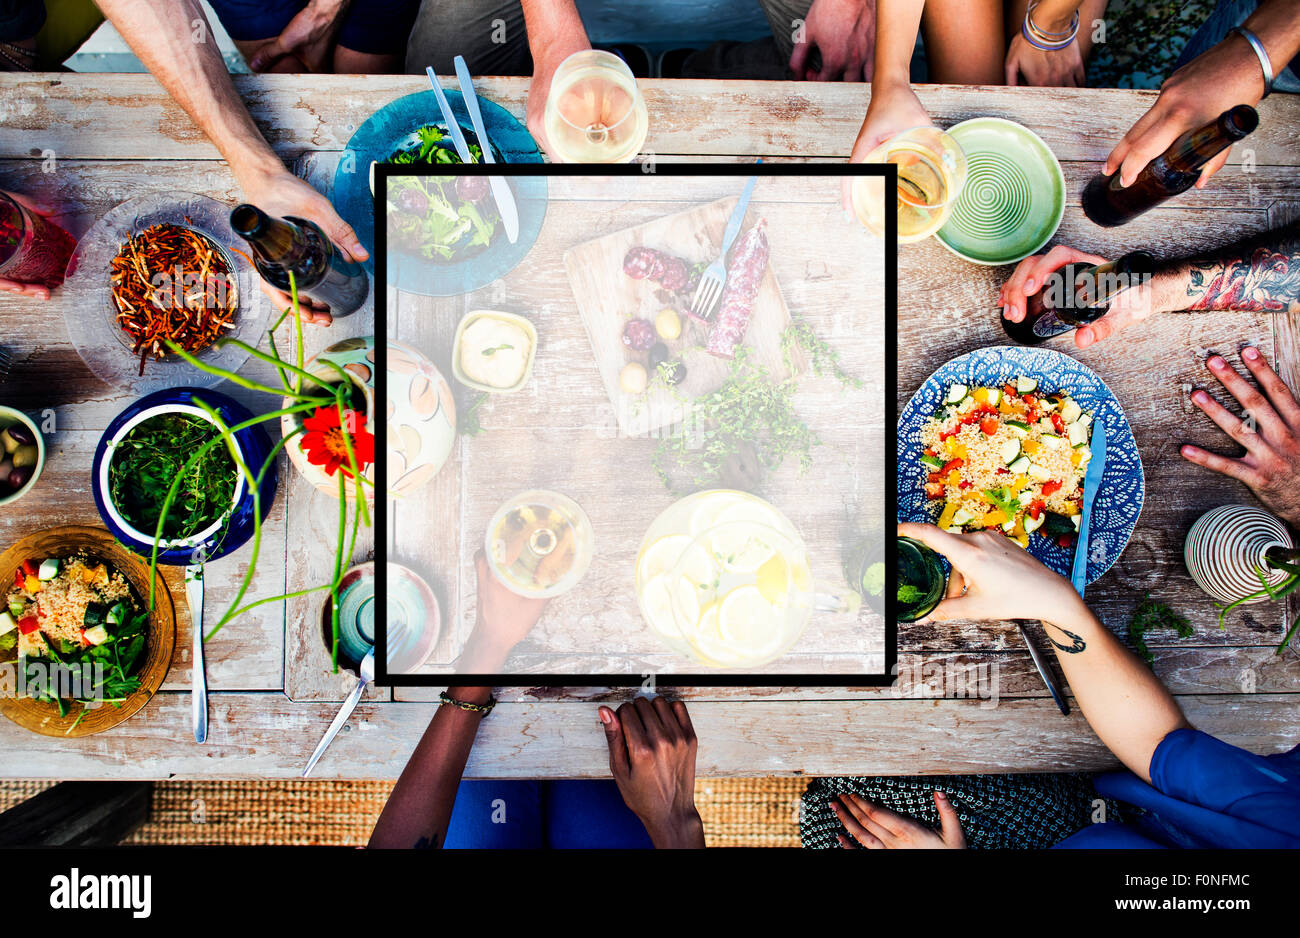 Summer Togetherness Friendship Square Copy Space Concept - Stock Image